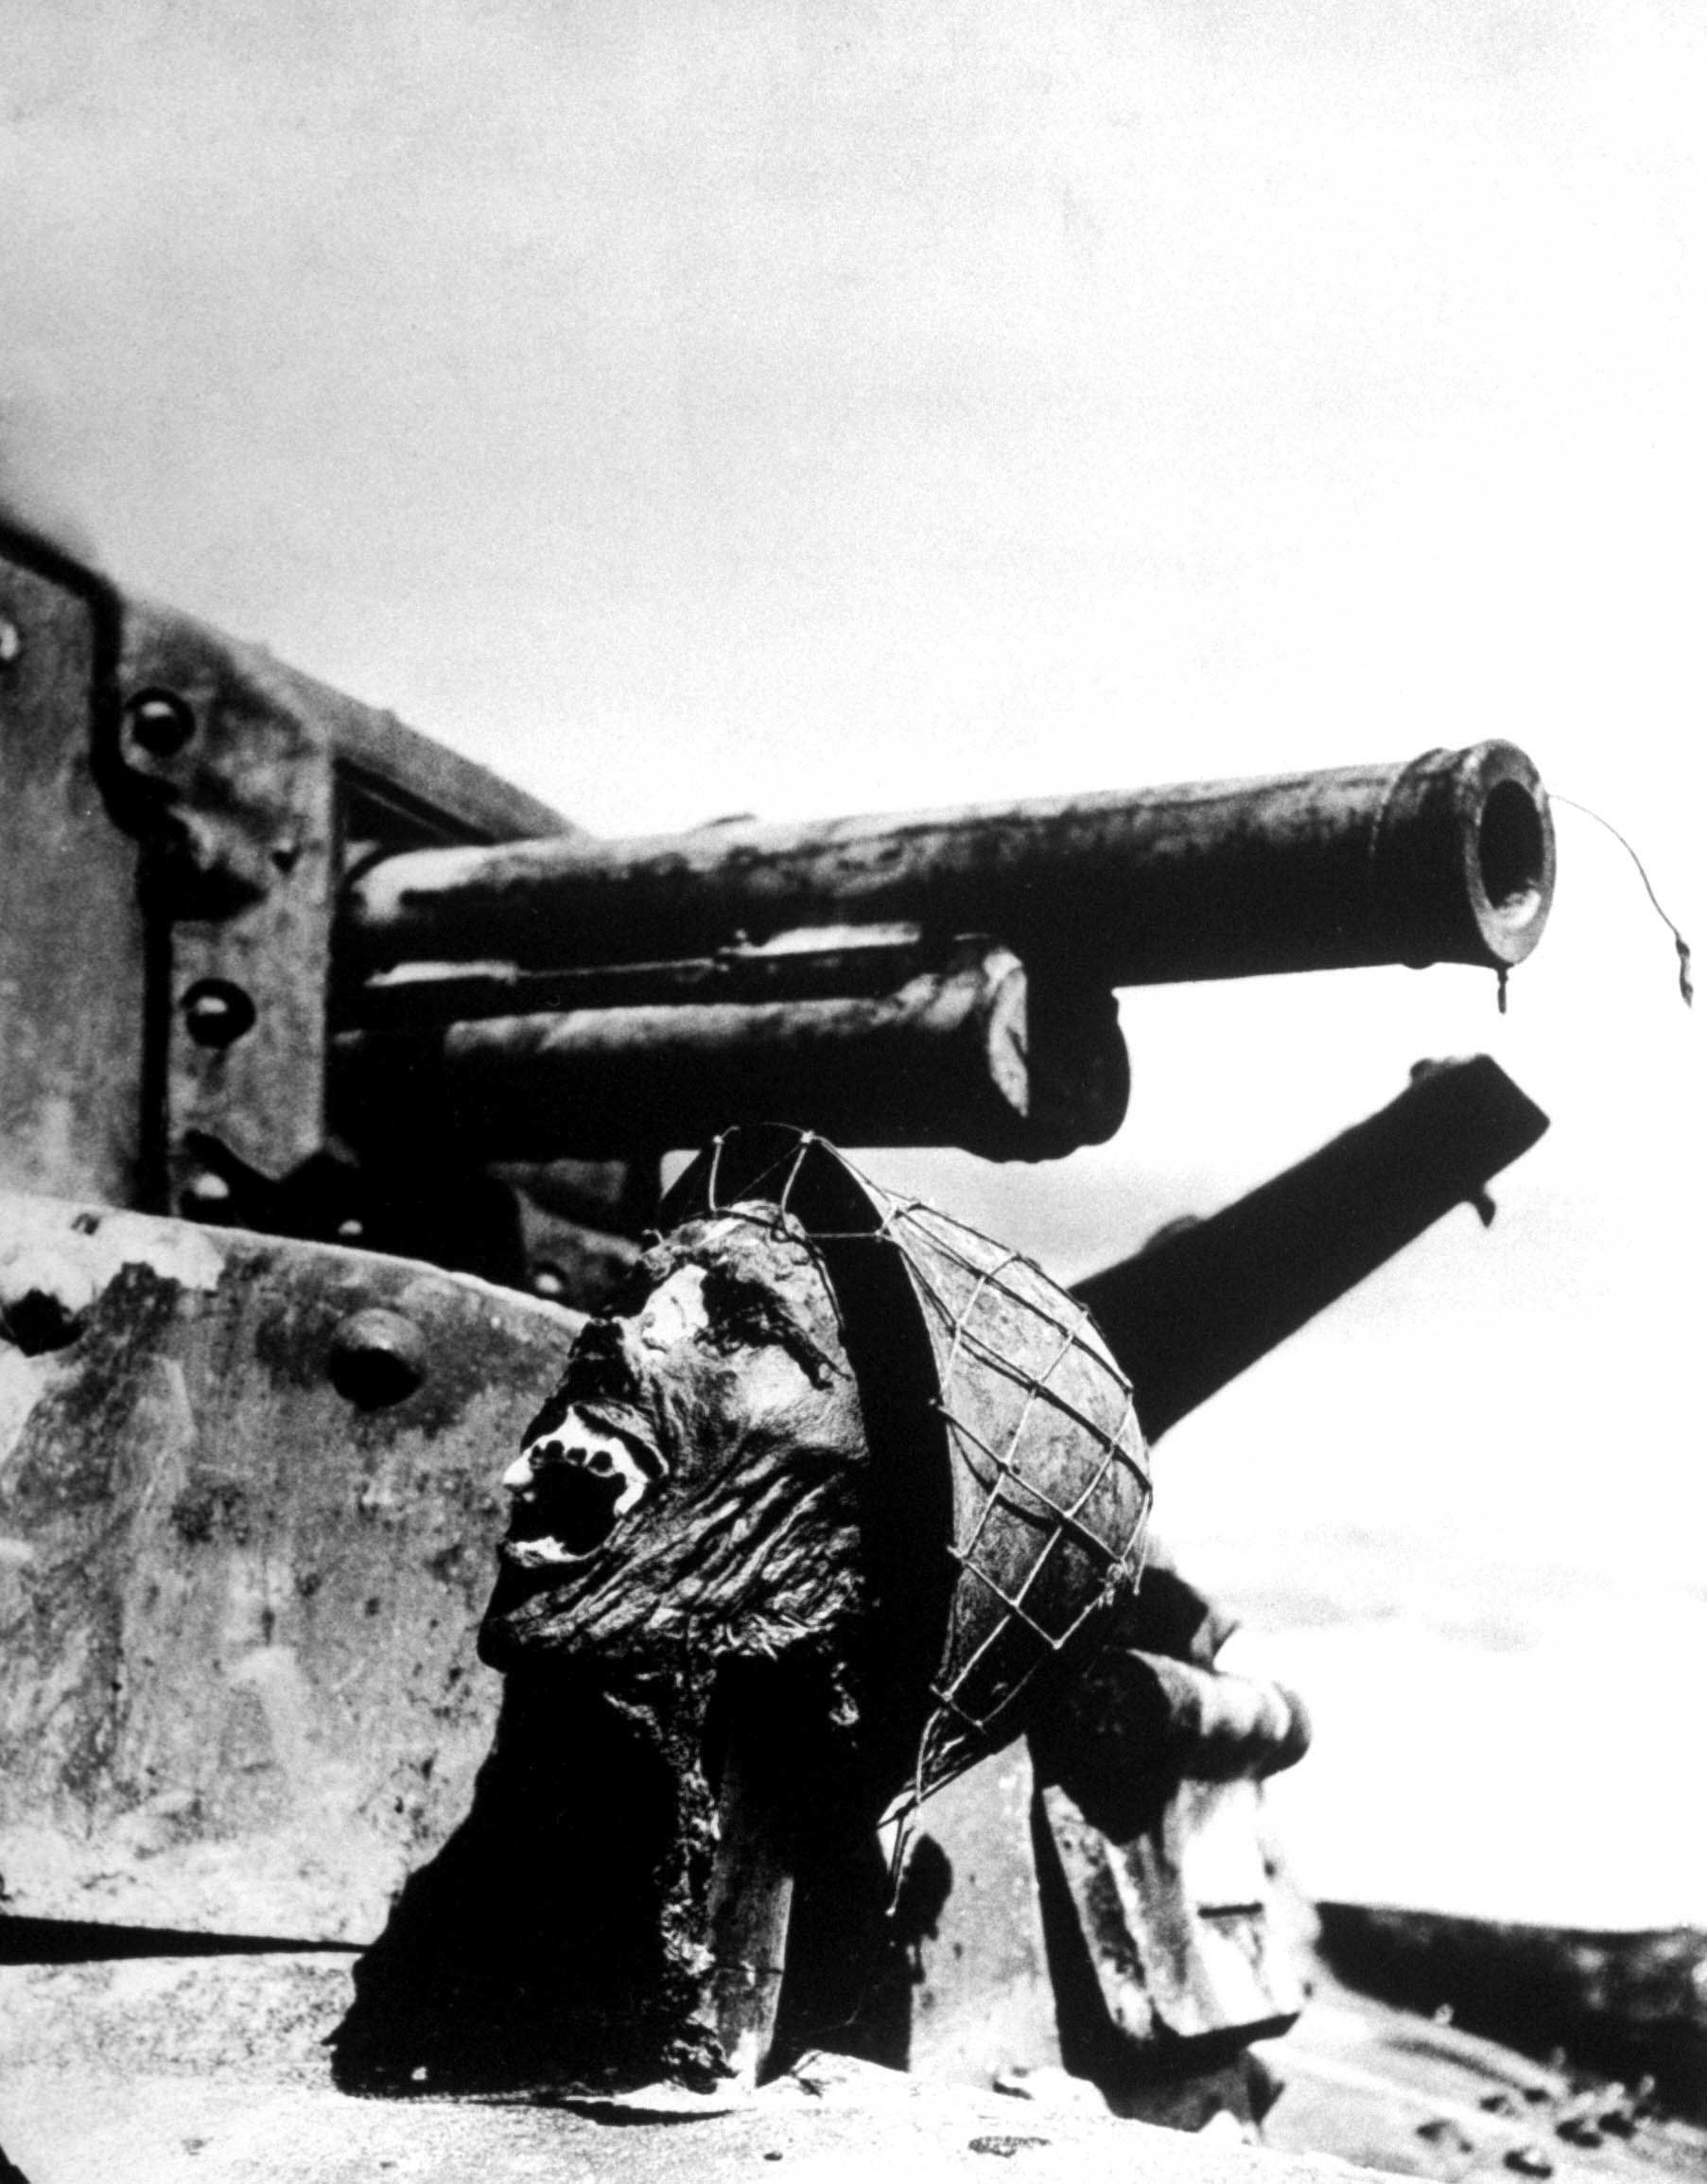 Severed head of a Japanese soldier, propped up on a disabled tank, Guadalcanal, 1942.